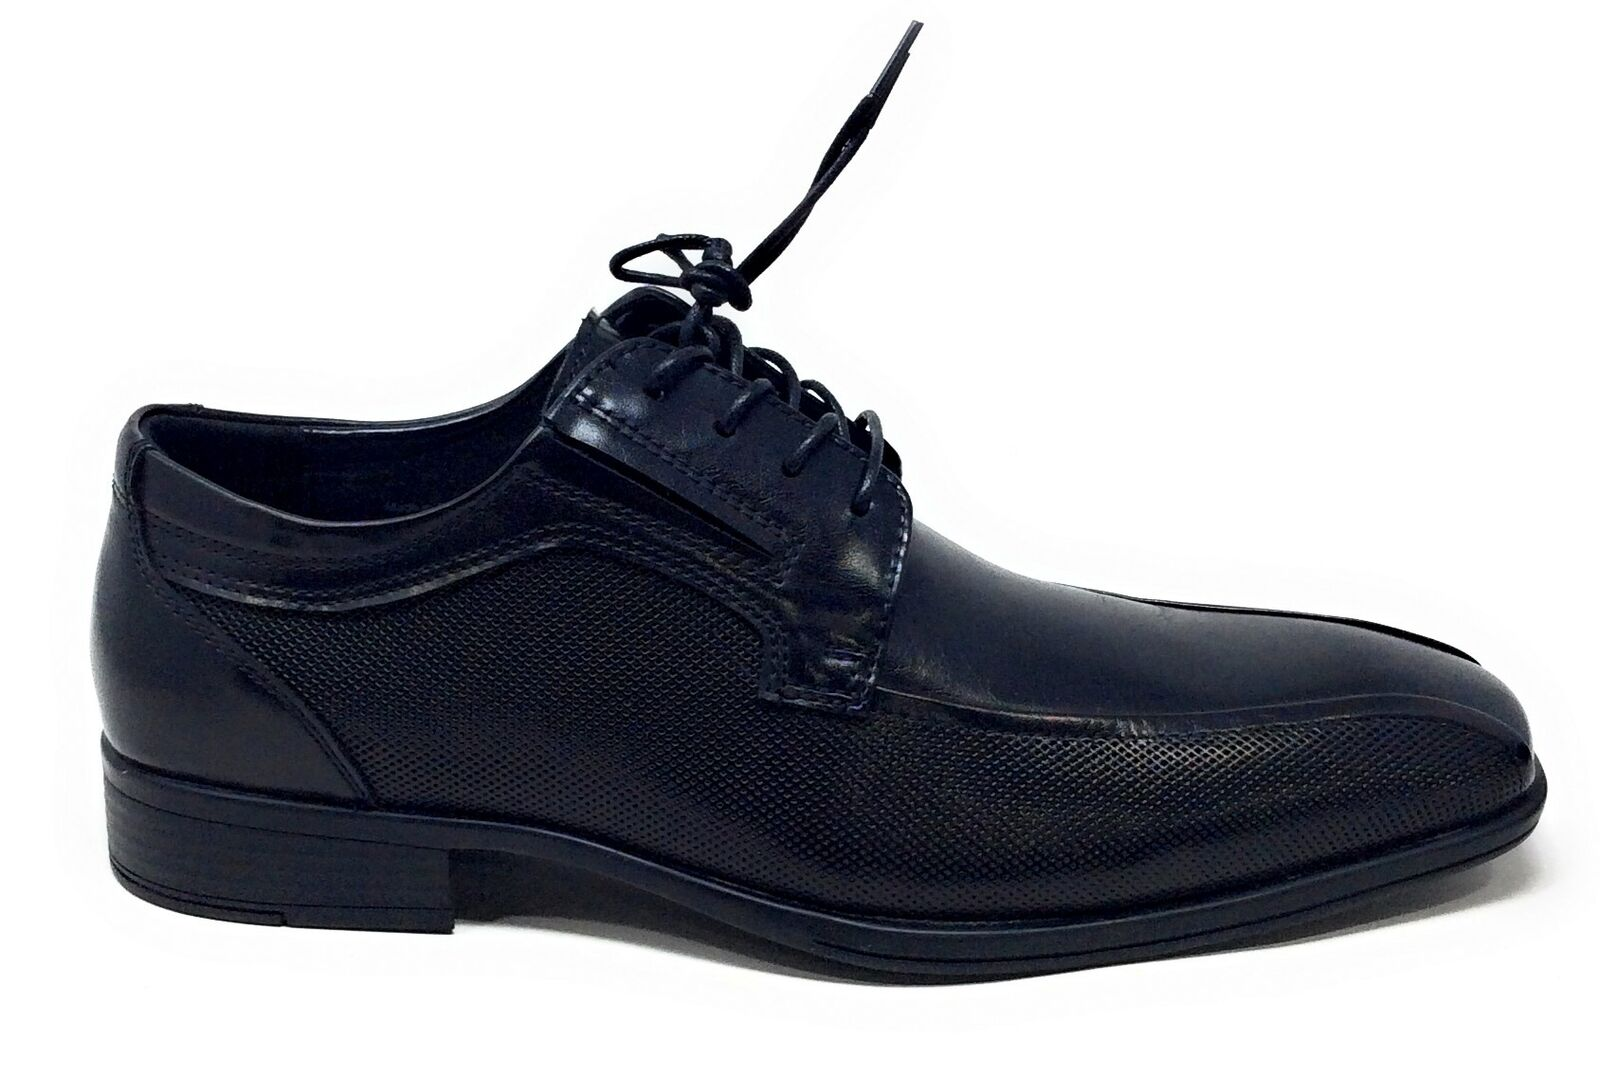 Kenneth Cole REACTION Mens Graham LACE UP B Oxford Black Size 7.5 M US